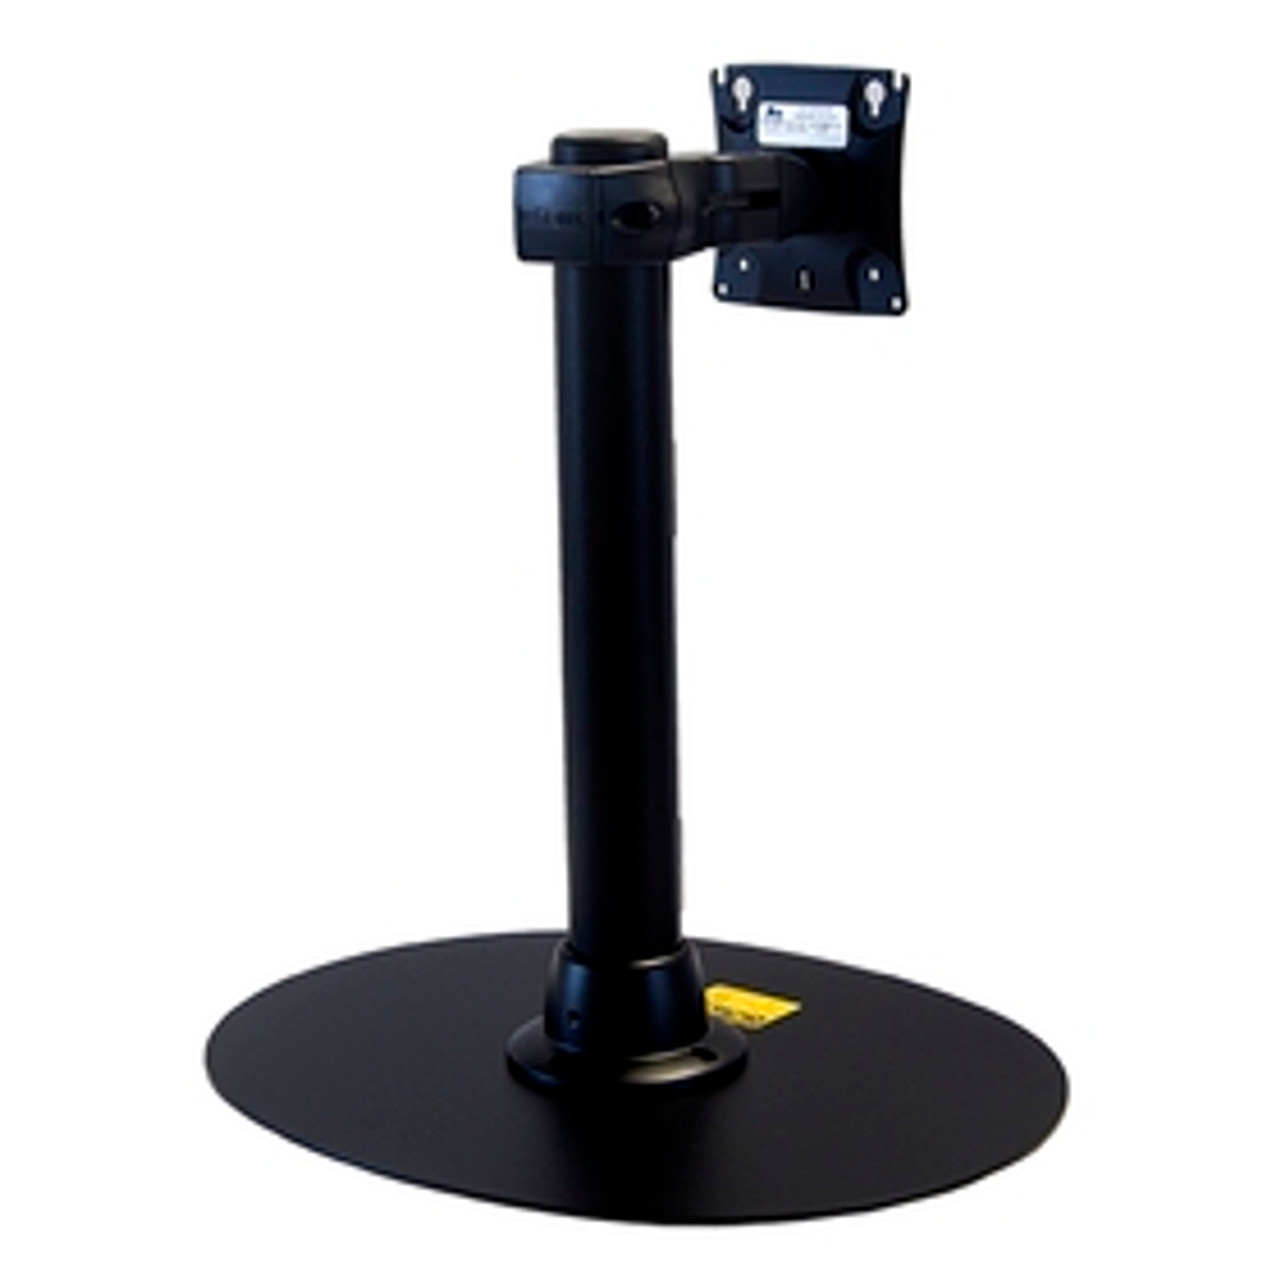 Preconfigured Monitor Mount Double Pivot With Desk Clamp 16 inch Pole